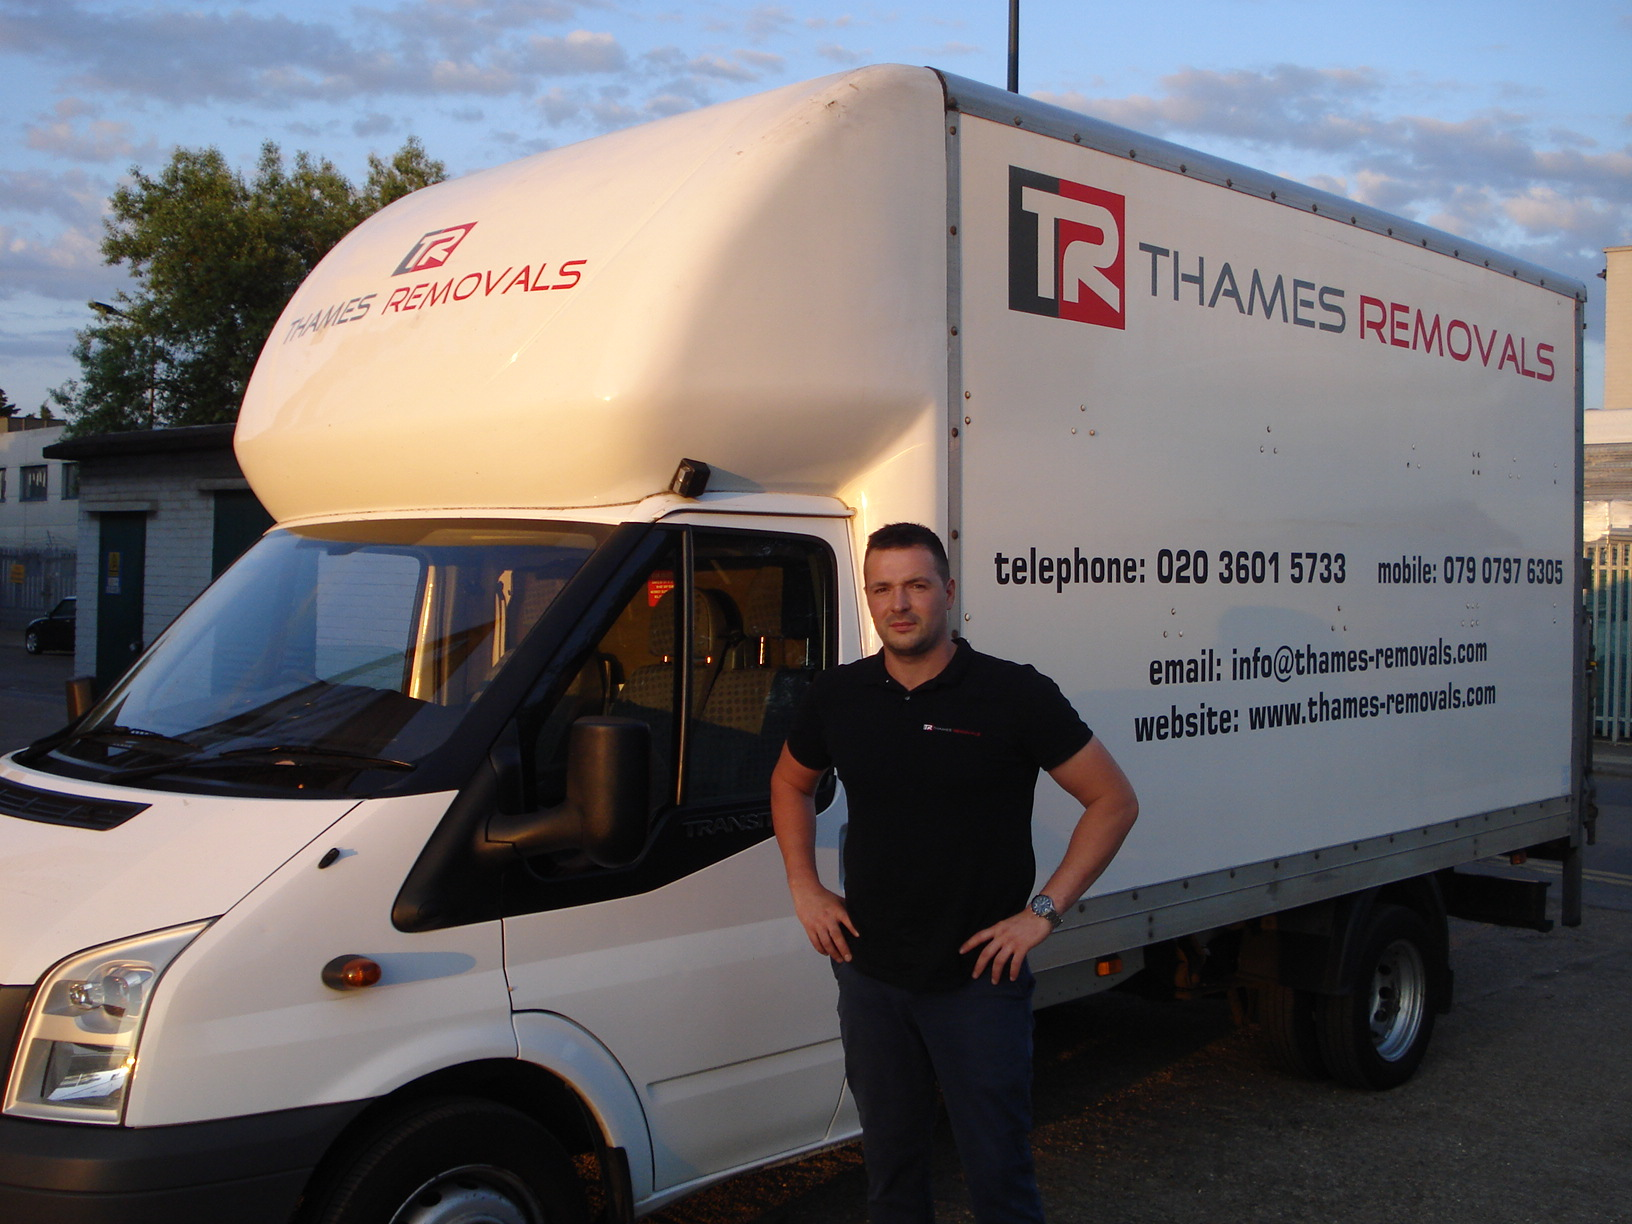 thames-removals-2